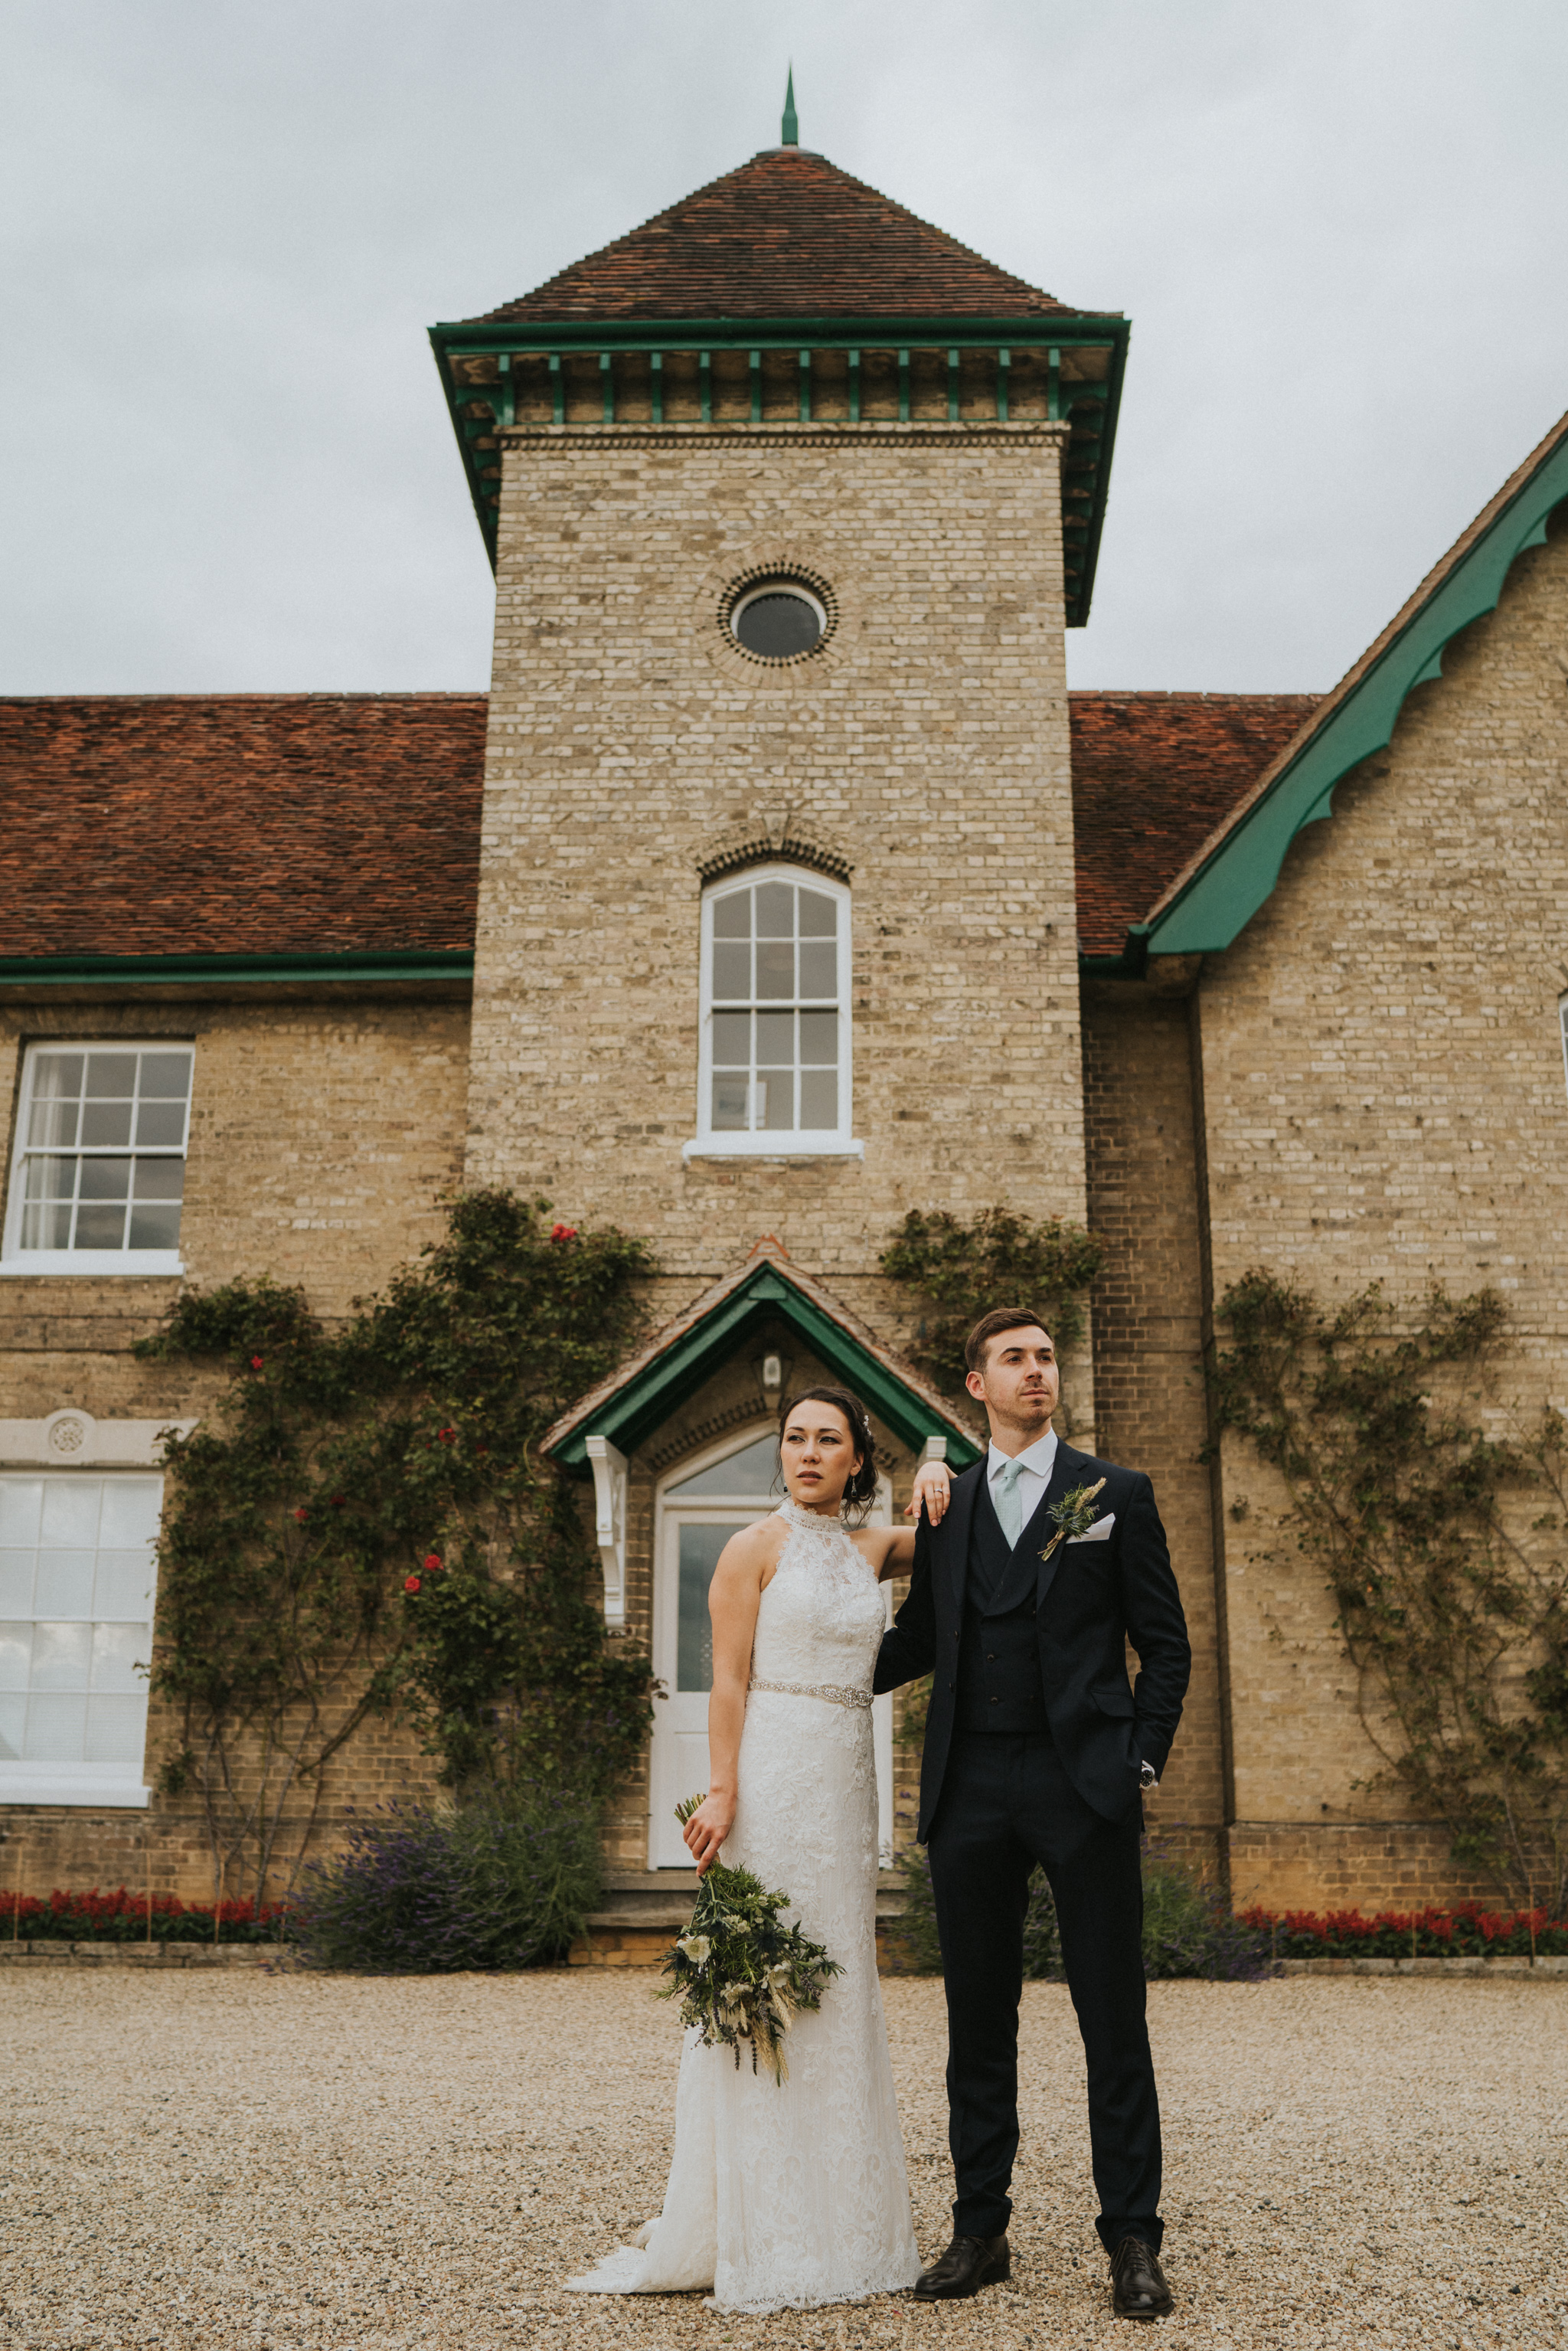 jane-patrick-smeetham-hall-barn-grace-elizabeth-colchester-essex-alternative-wedding-lifestyle-photographer-essex-suffolk-norfolk-devon (42 of 52).jpg